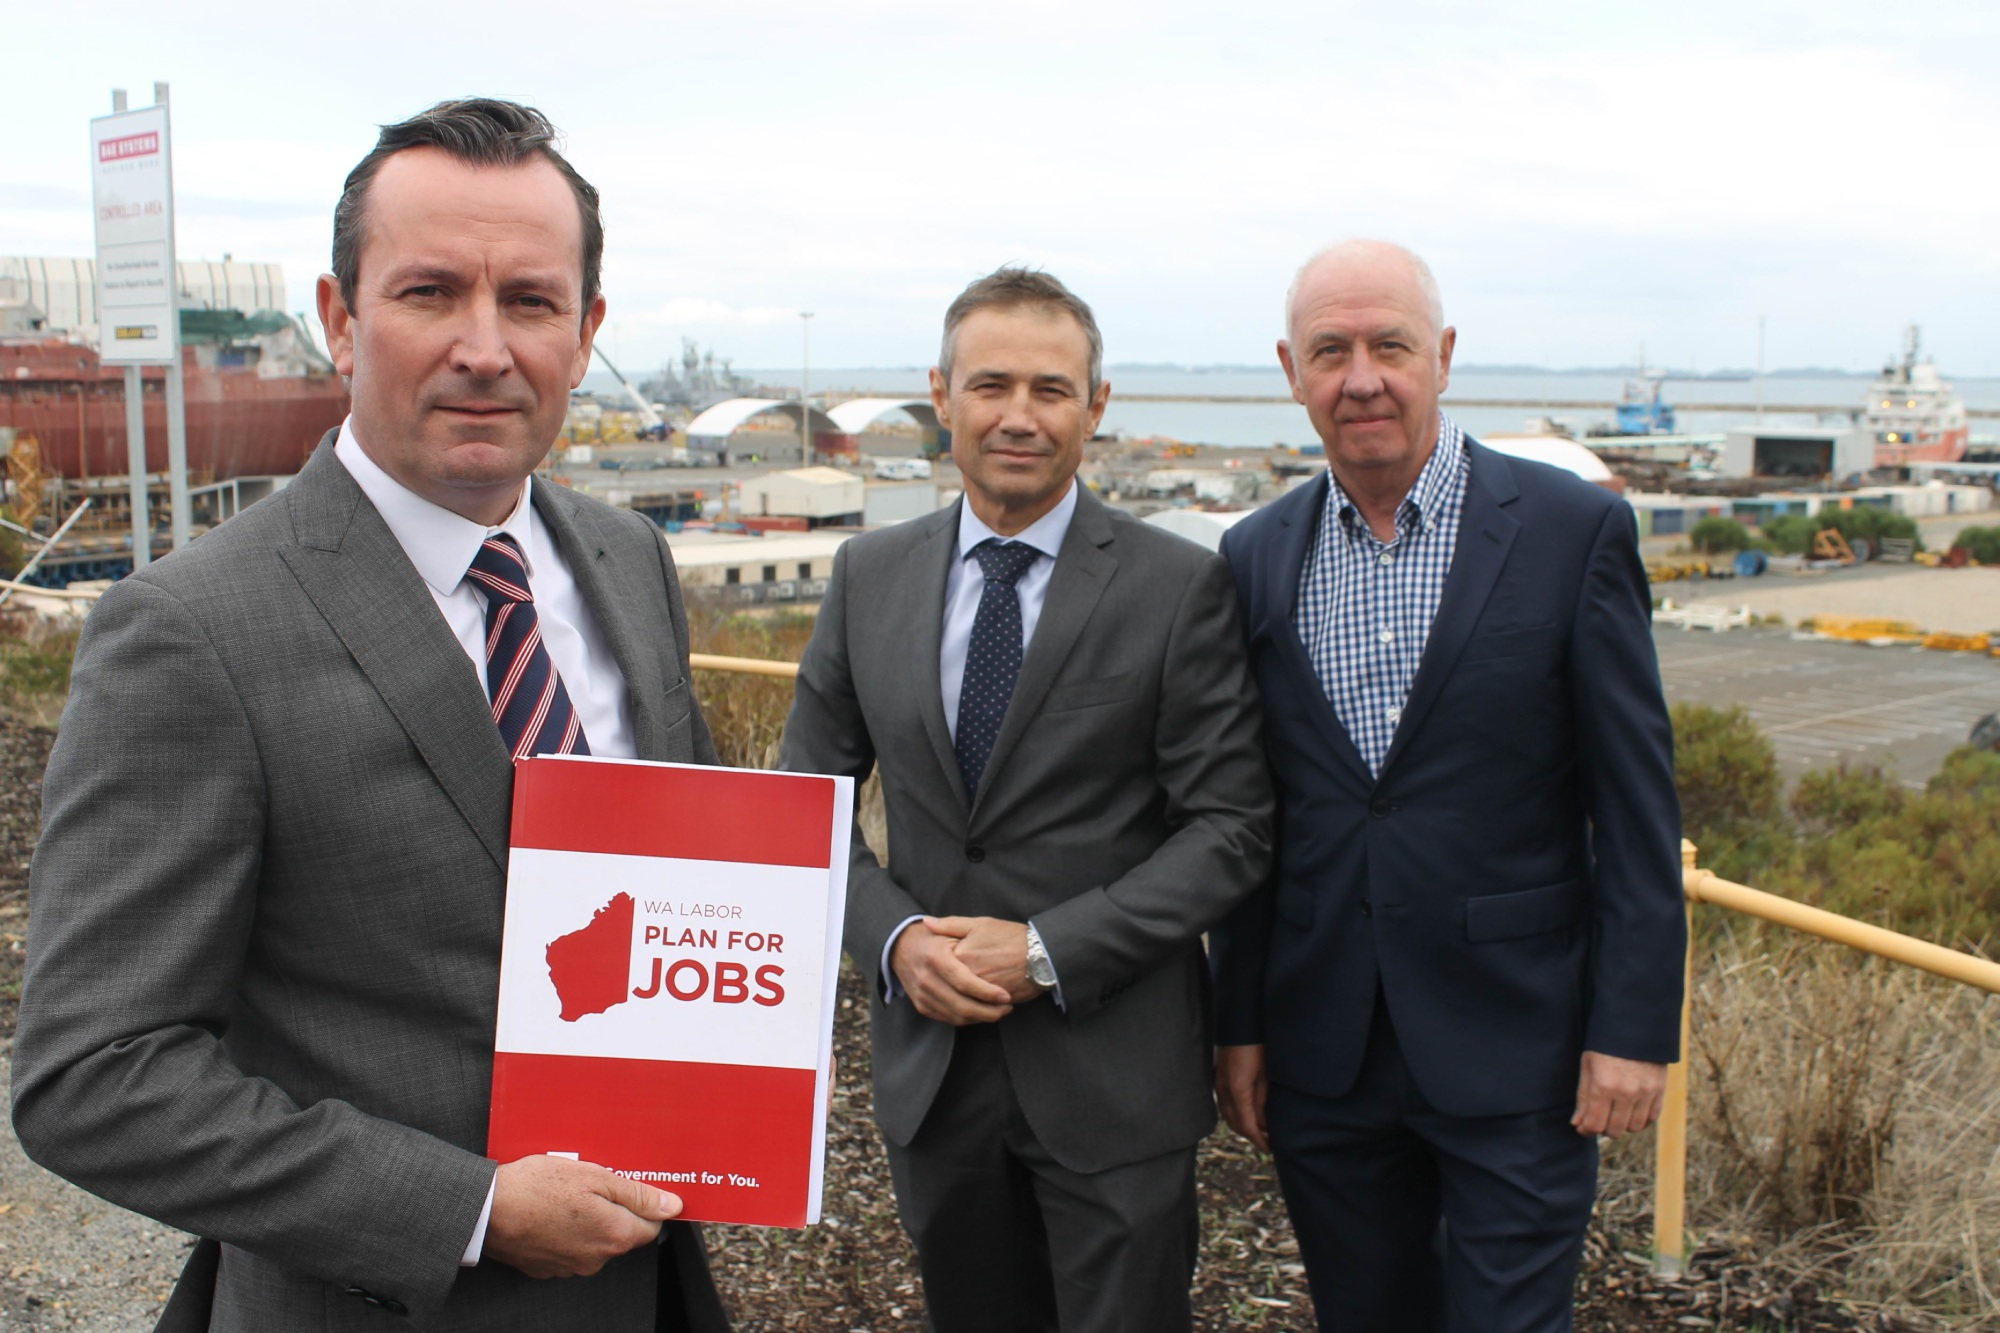 Mark McGowan with Kwinana MLA Roger Cook and Cockburn MLA Fran Logan.